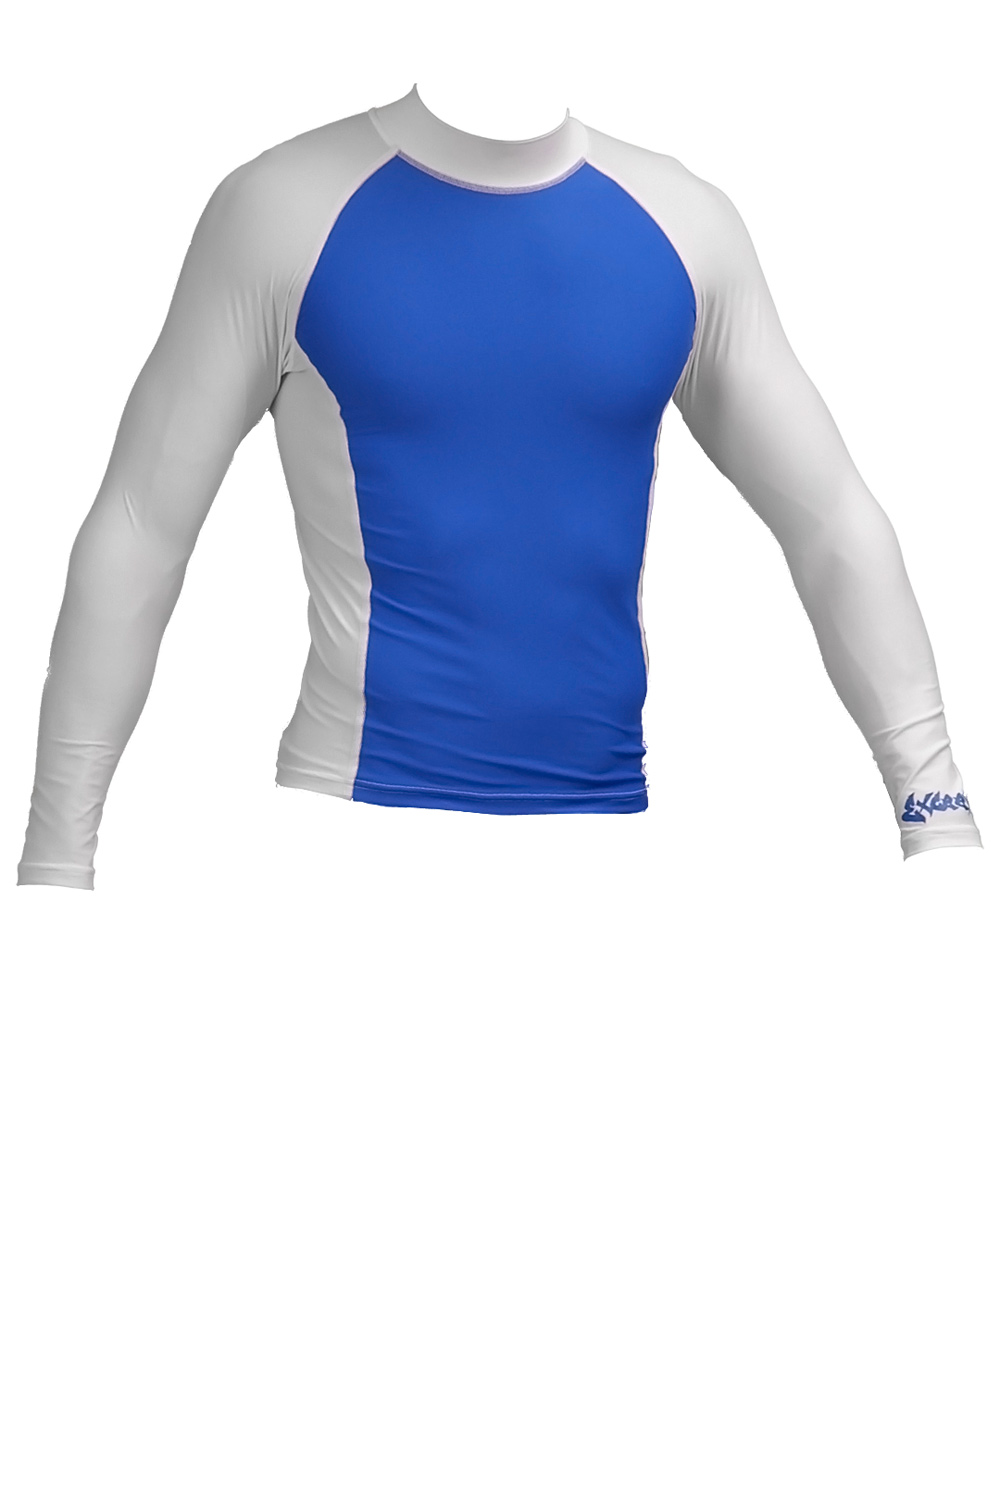 Exceed Eminence Mens Long Sleeve Rash Guard